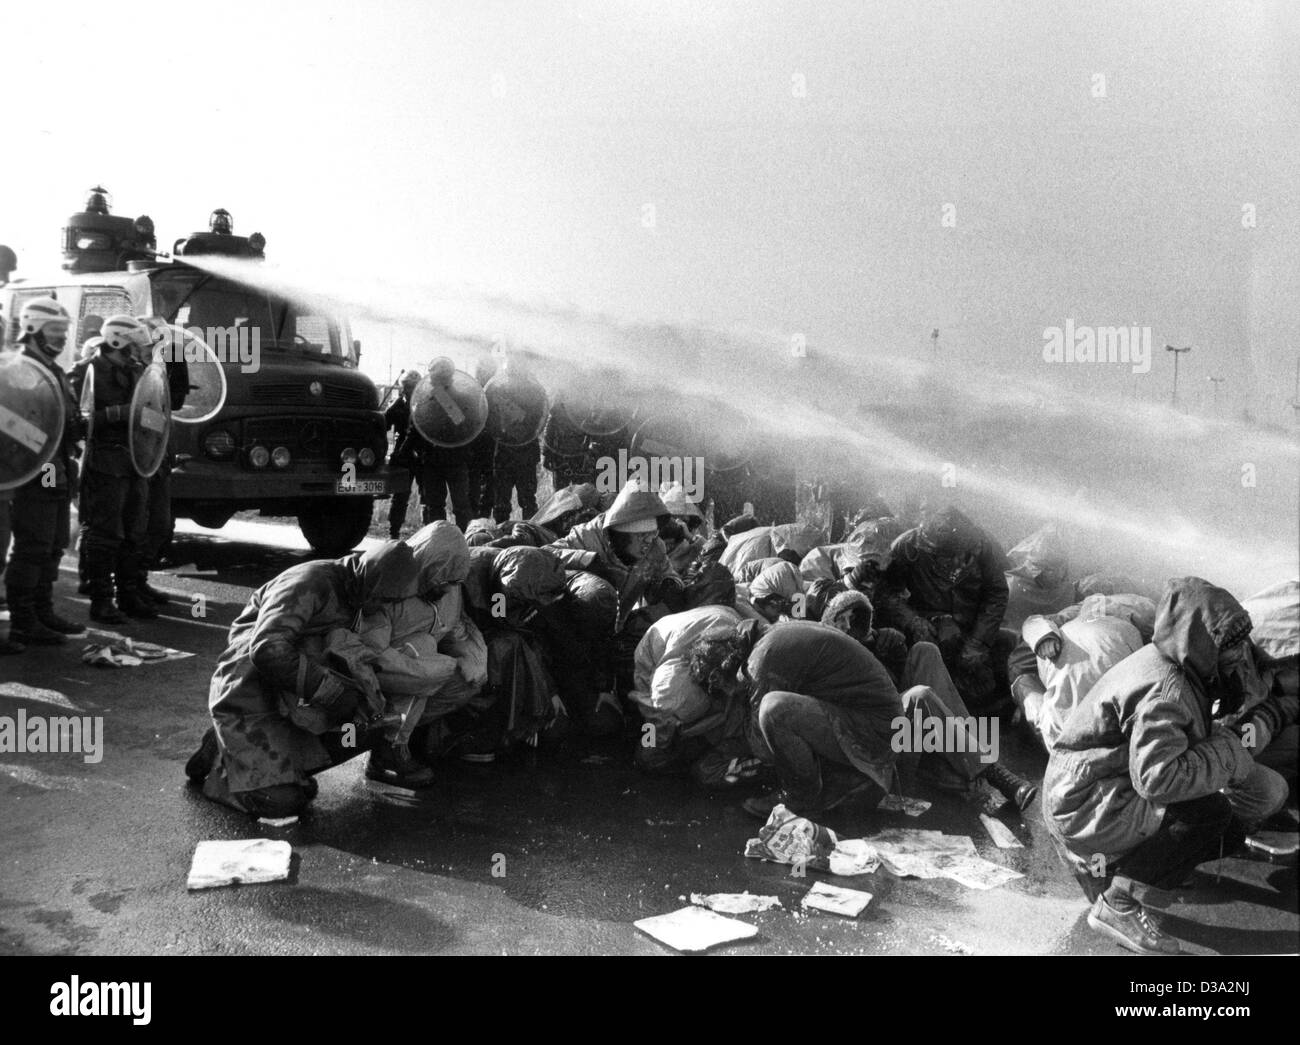 (dpa files) - Police use water canons against a blockade of demonstrators, who block the access road to the building - Stock Image